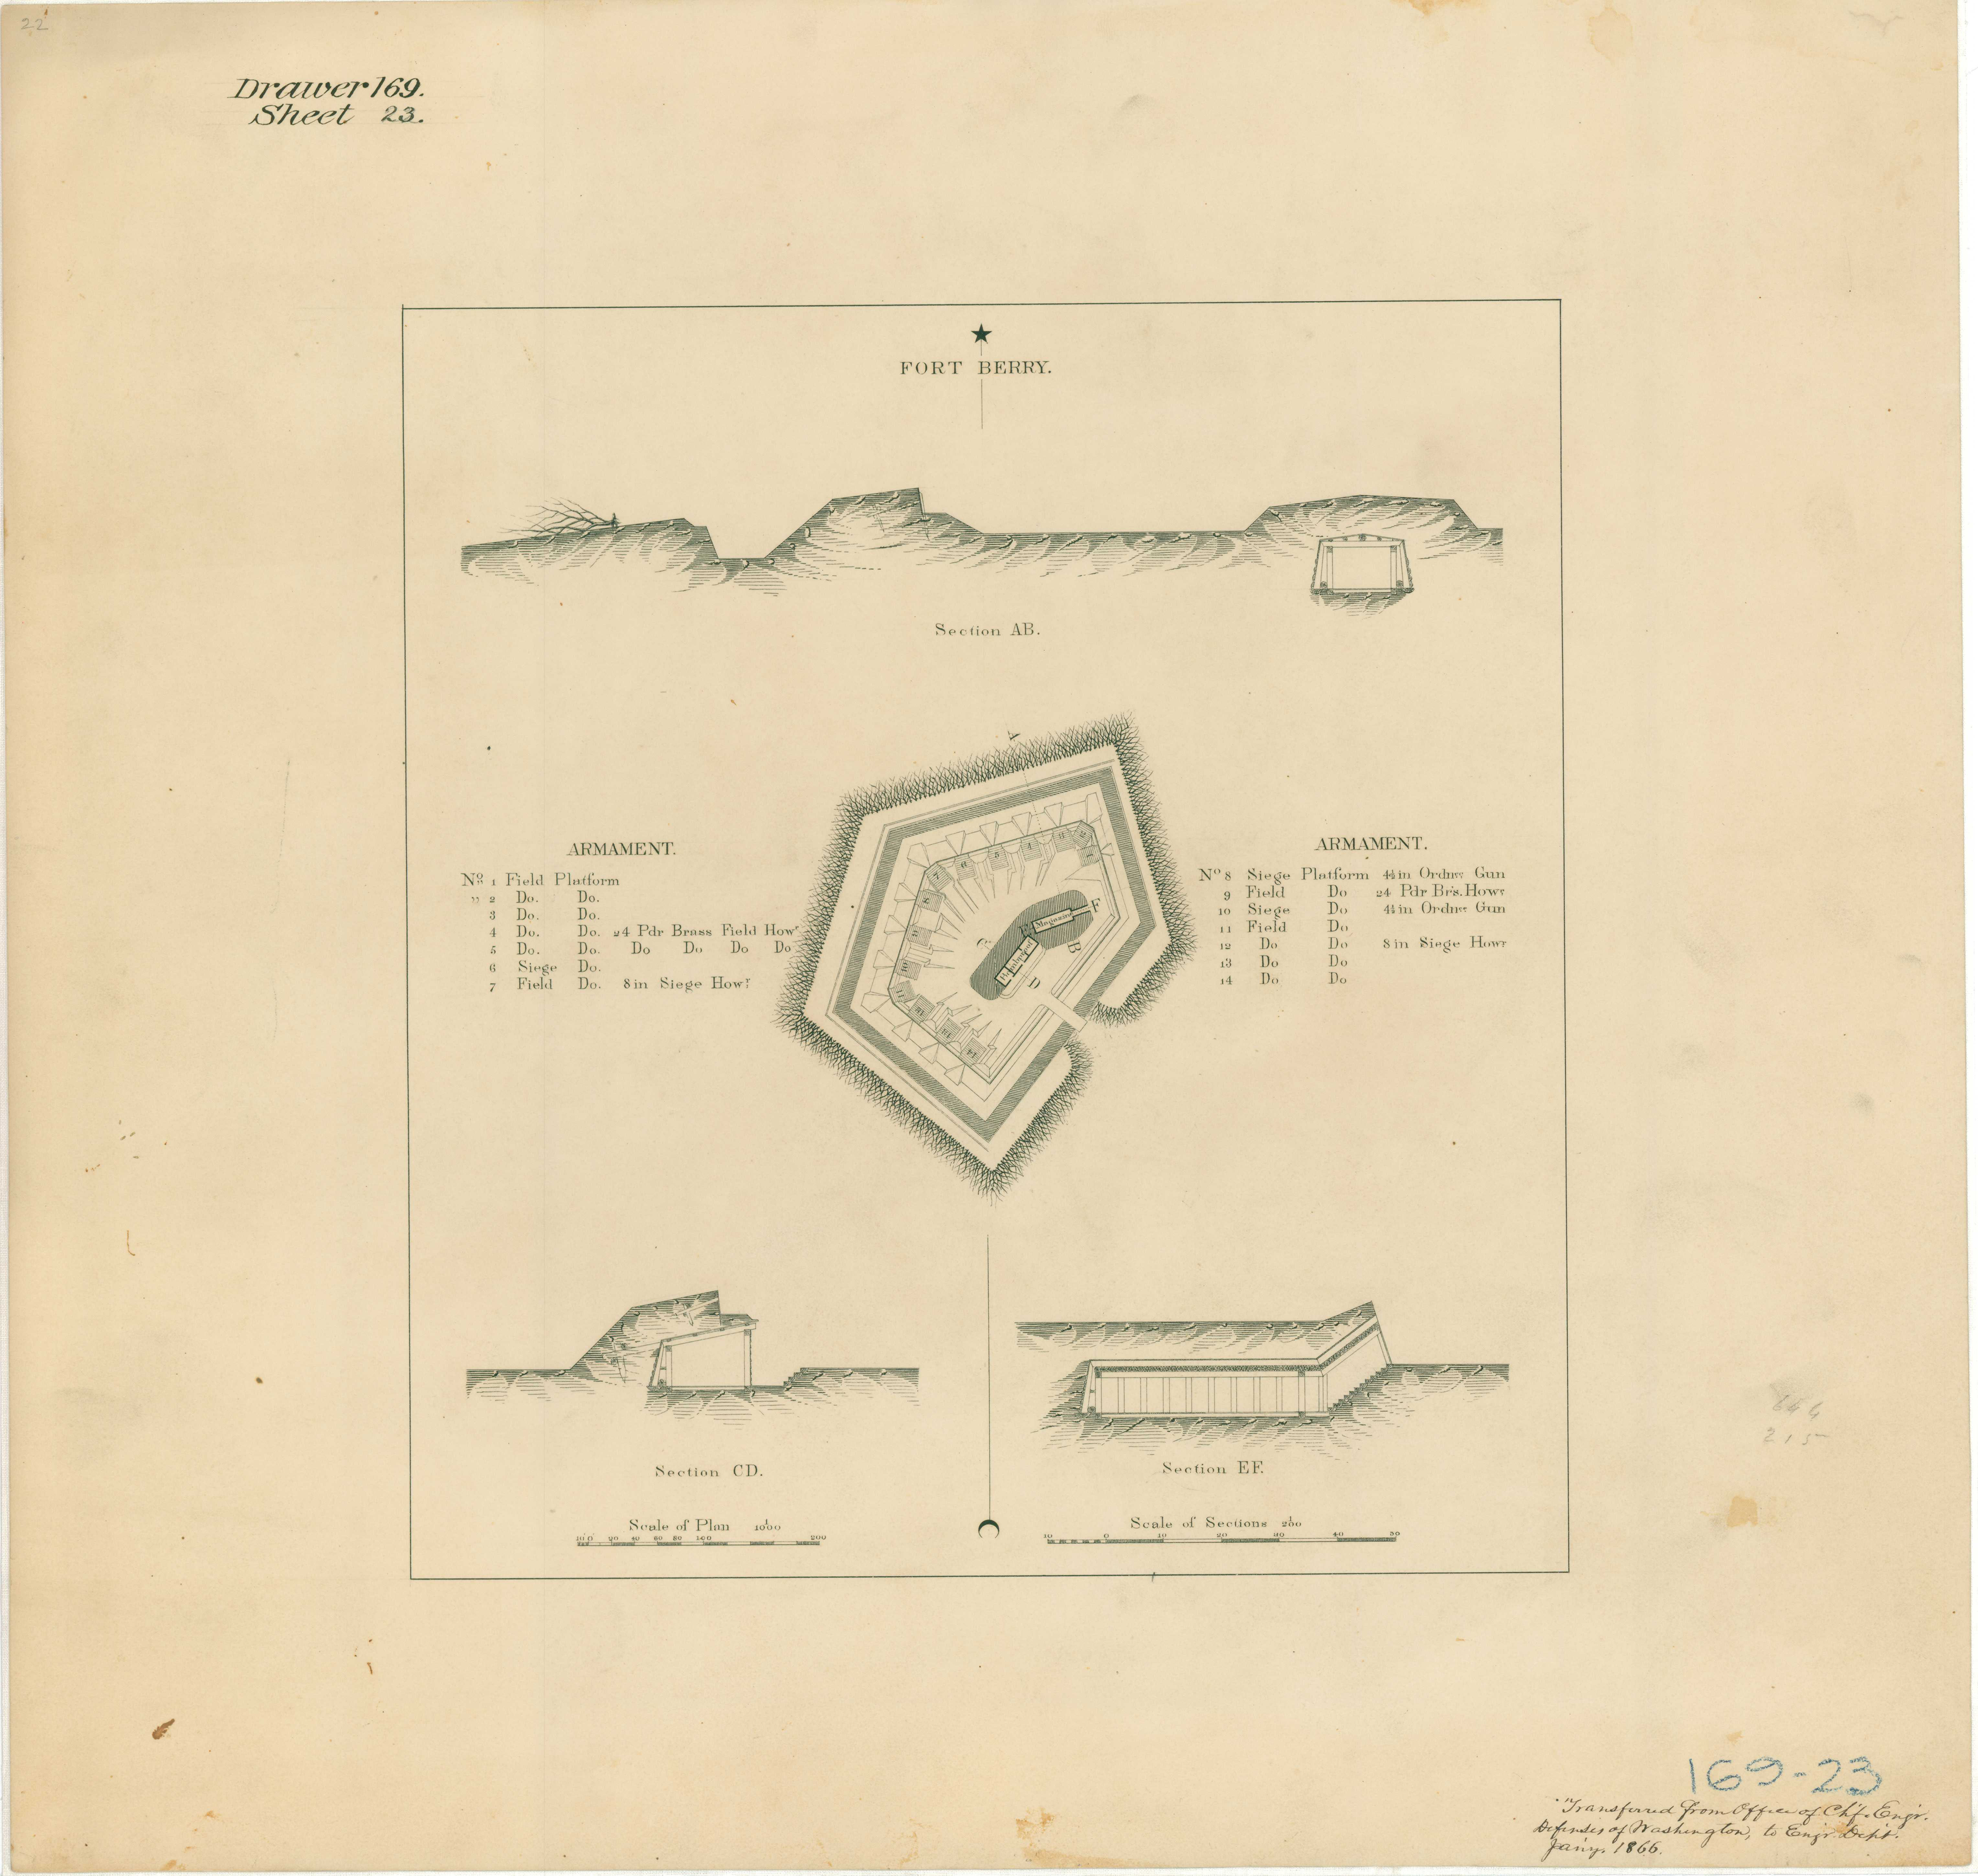 Plans and sections of Fort Berry